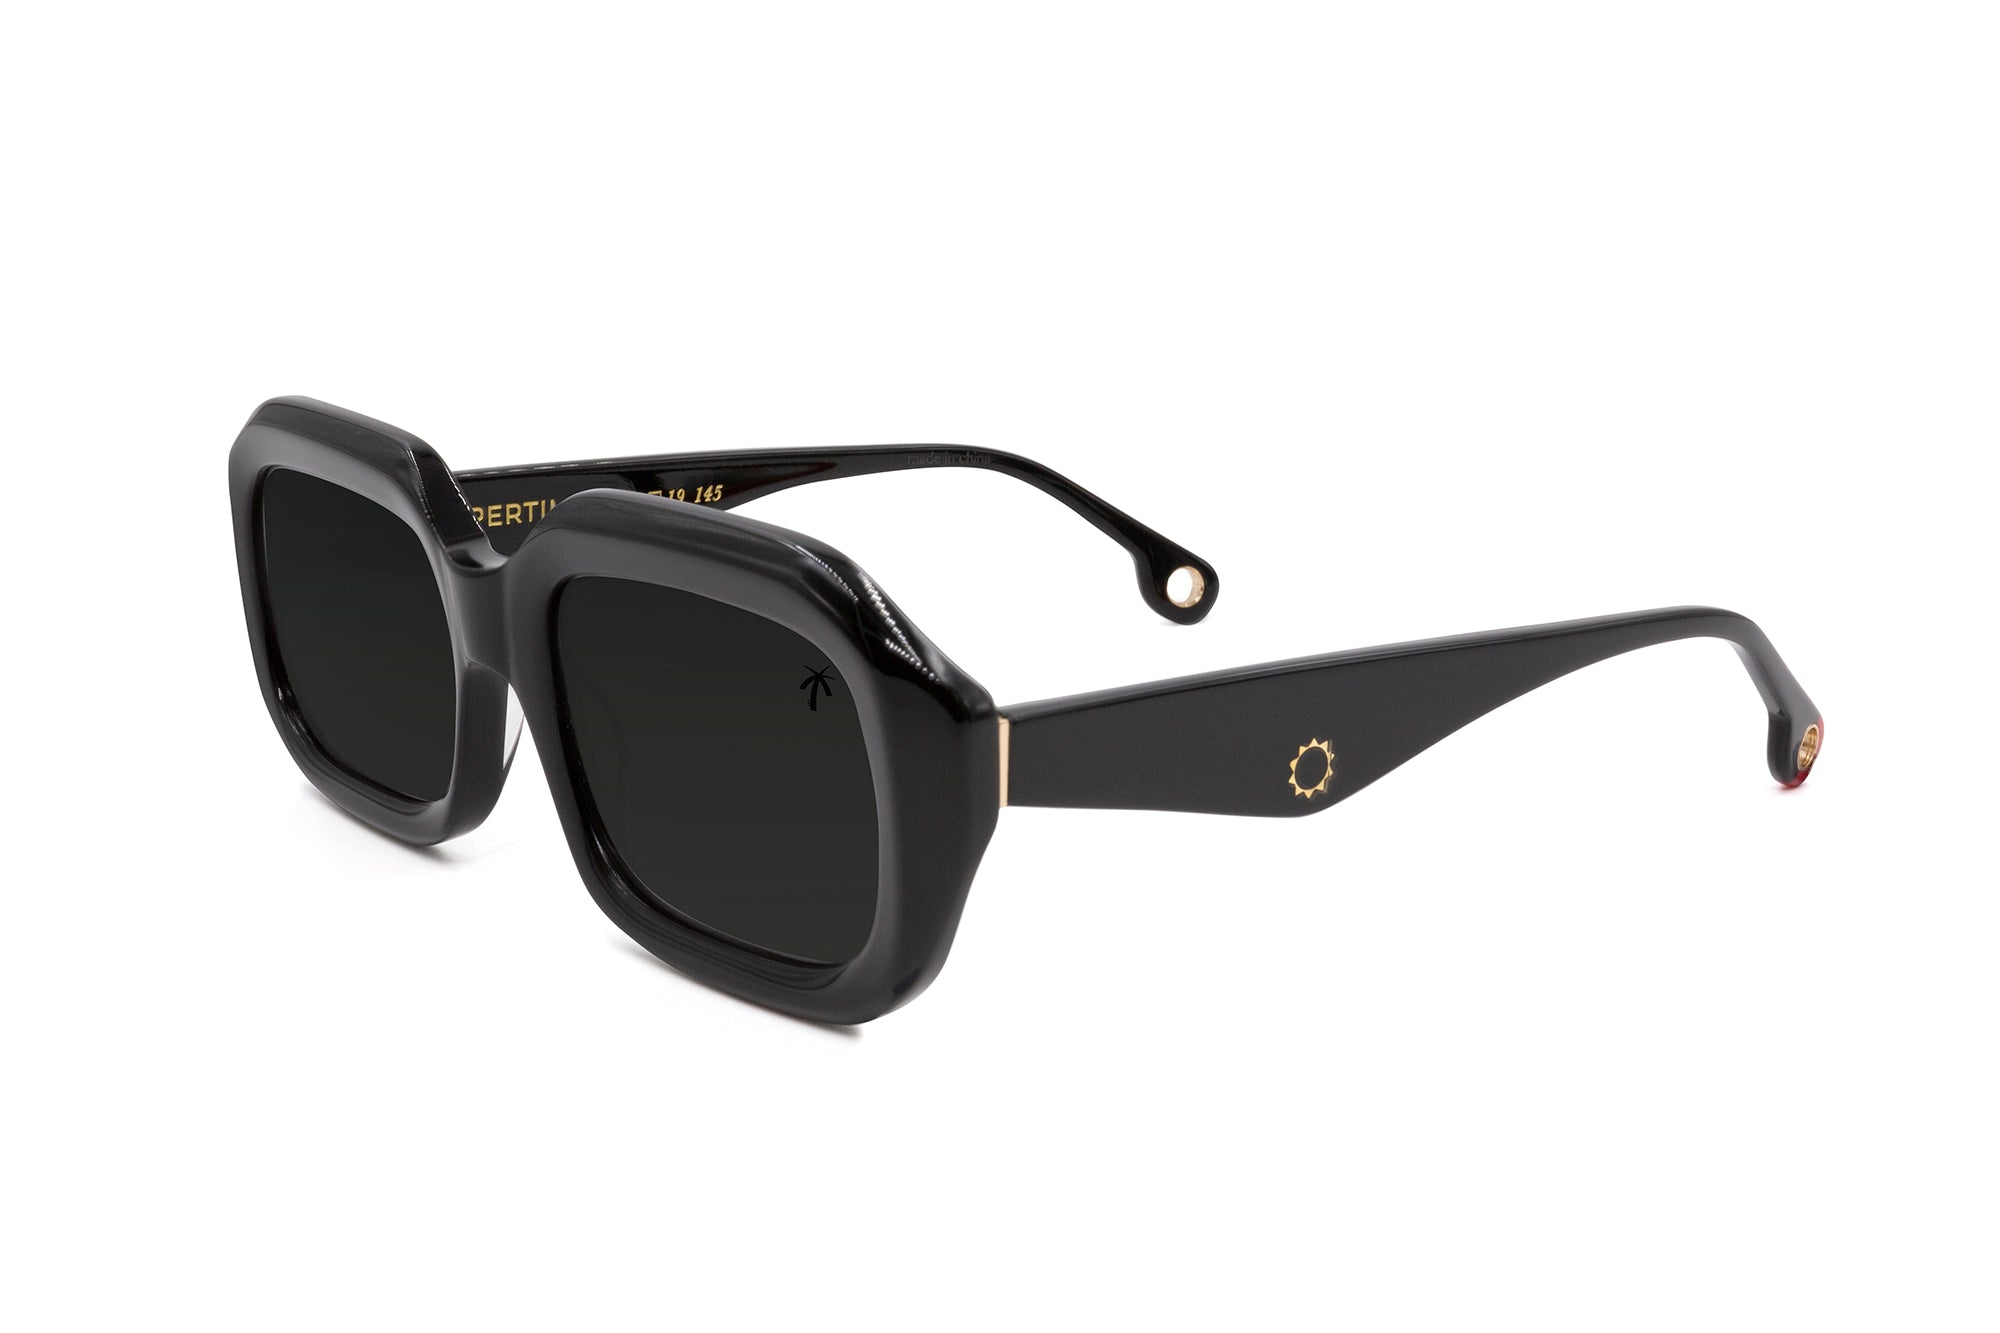 Compton in Black - Peppertint - Designer sunglasses